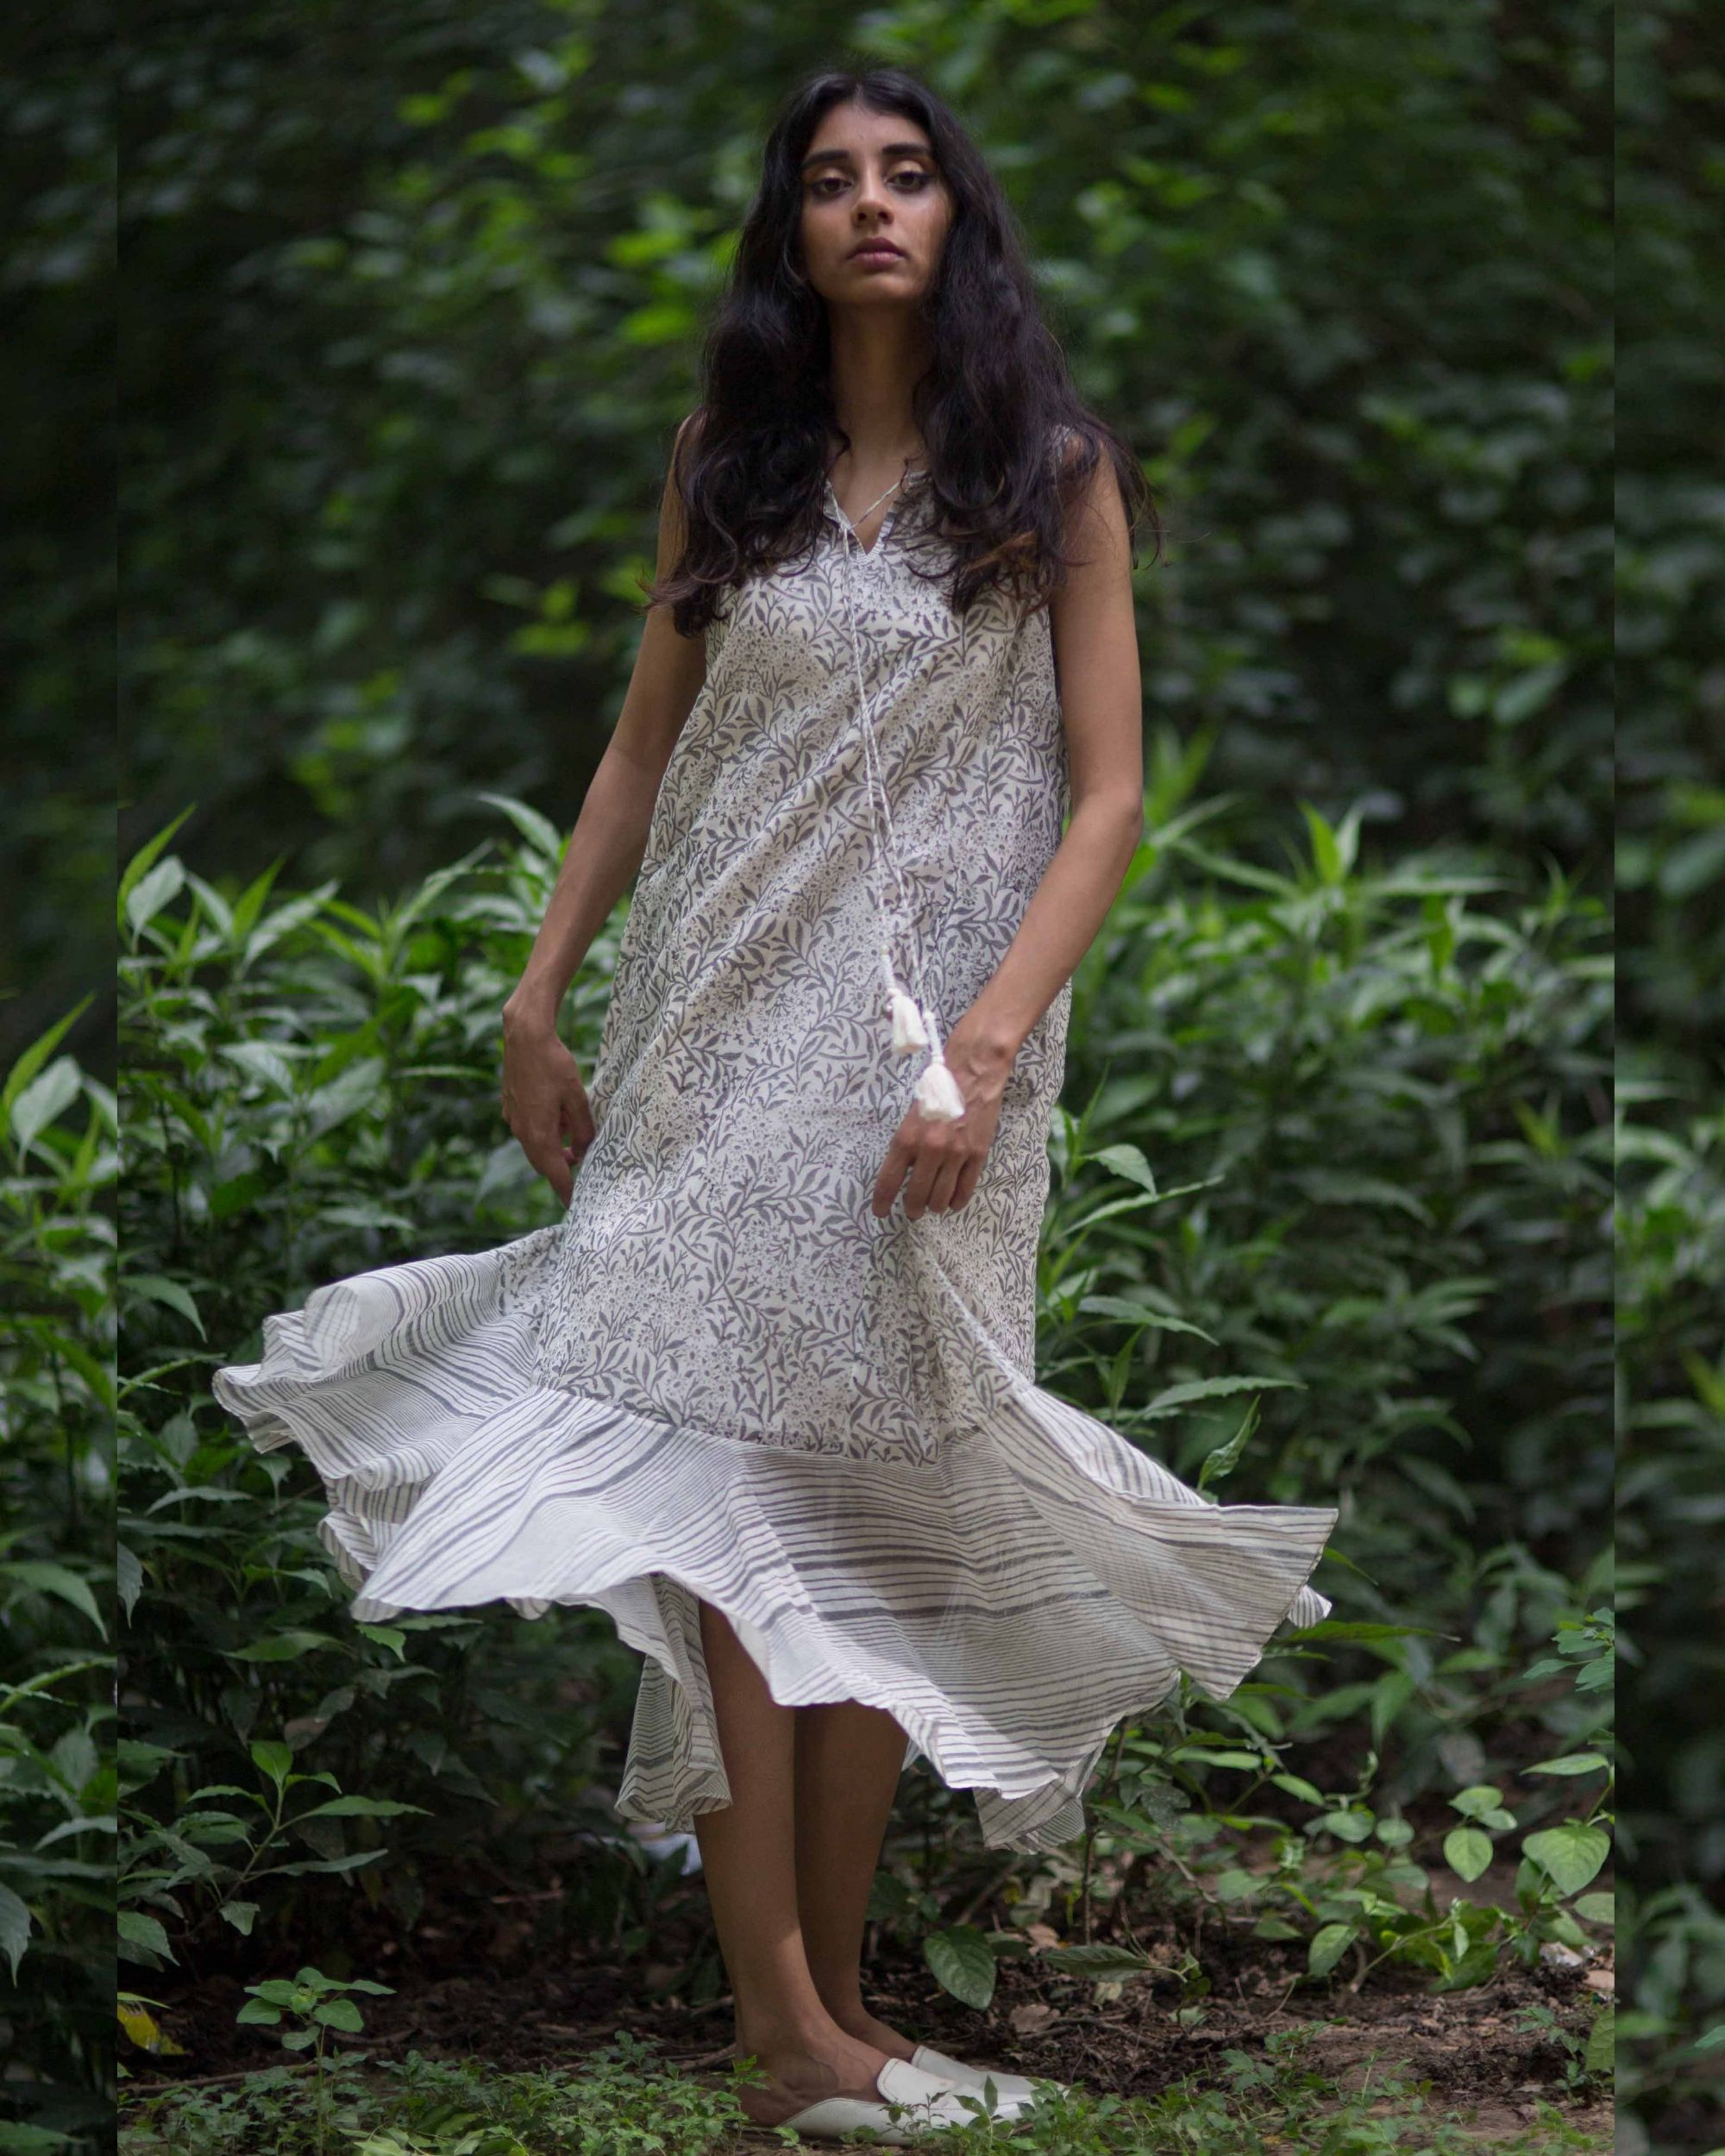 Frilled grey colored dress